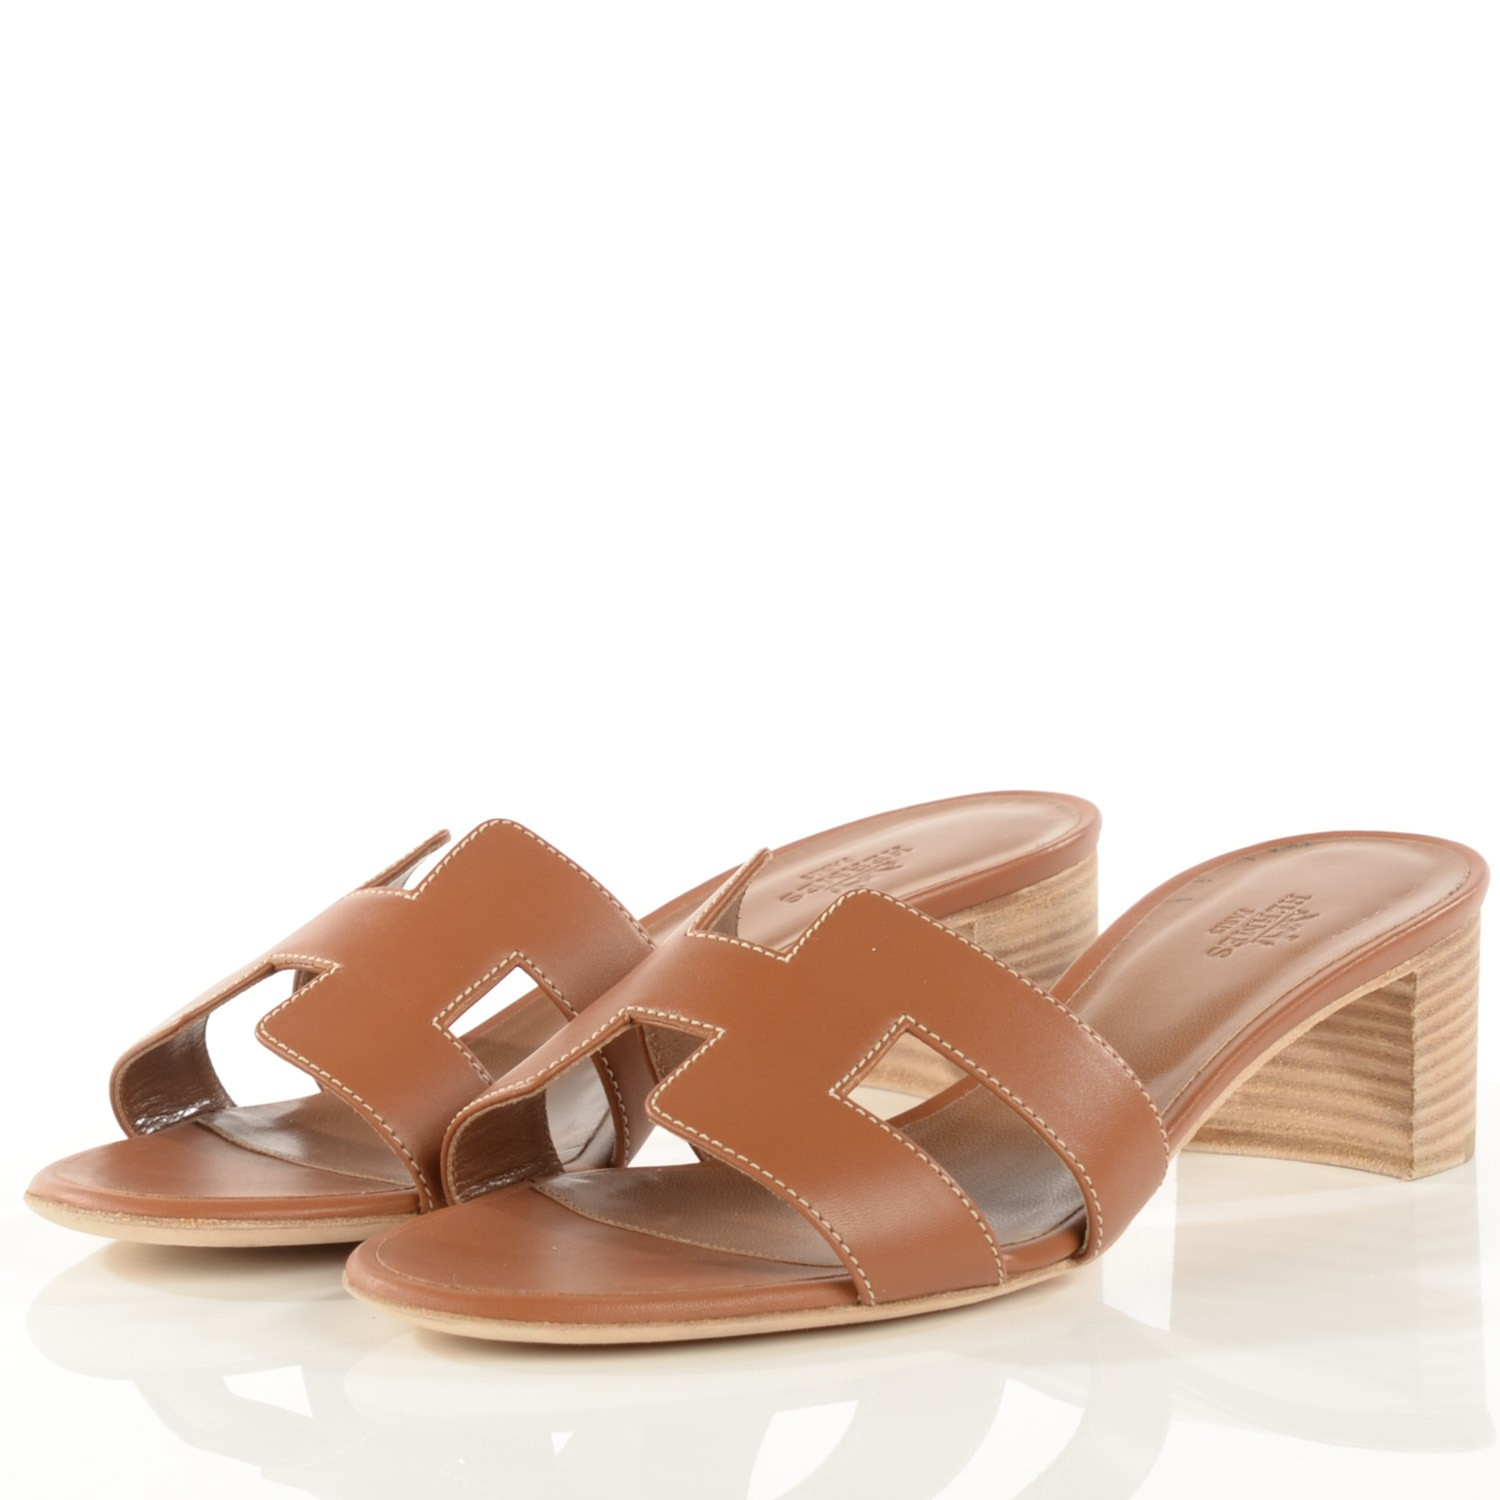 """For all of our classic gals out there, there is nothing more timeless than a pair of Hermes sandals. Pair with denim, a sheath dress, or mini skirt and blouse for the perfect """"off duty"""" look."""